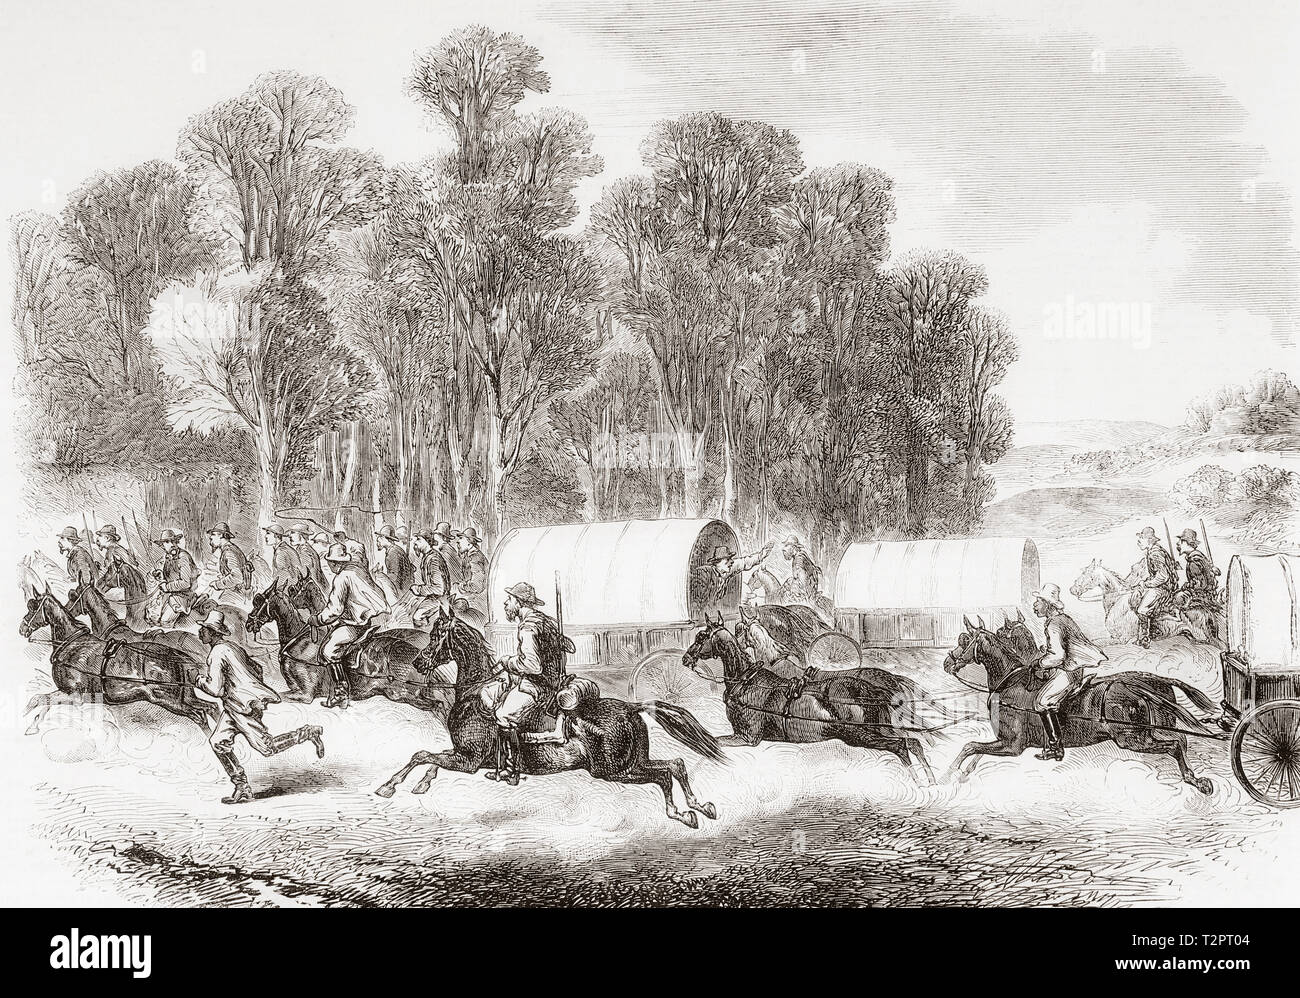 The last days of the Confederate Government, the conclusion of the American Civil War.  A sudden alarm and stampede, the flight of Confederate soldiers before the advance of the Federal Cavalry.  From The Illustrated London News, published 1865. - Stock Image